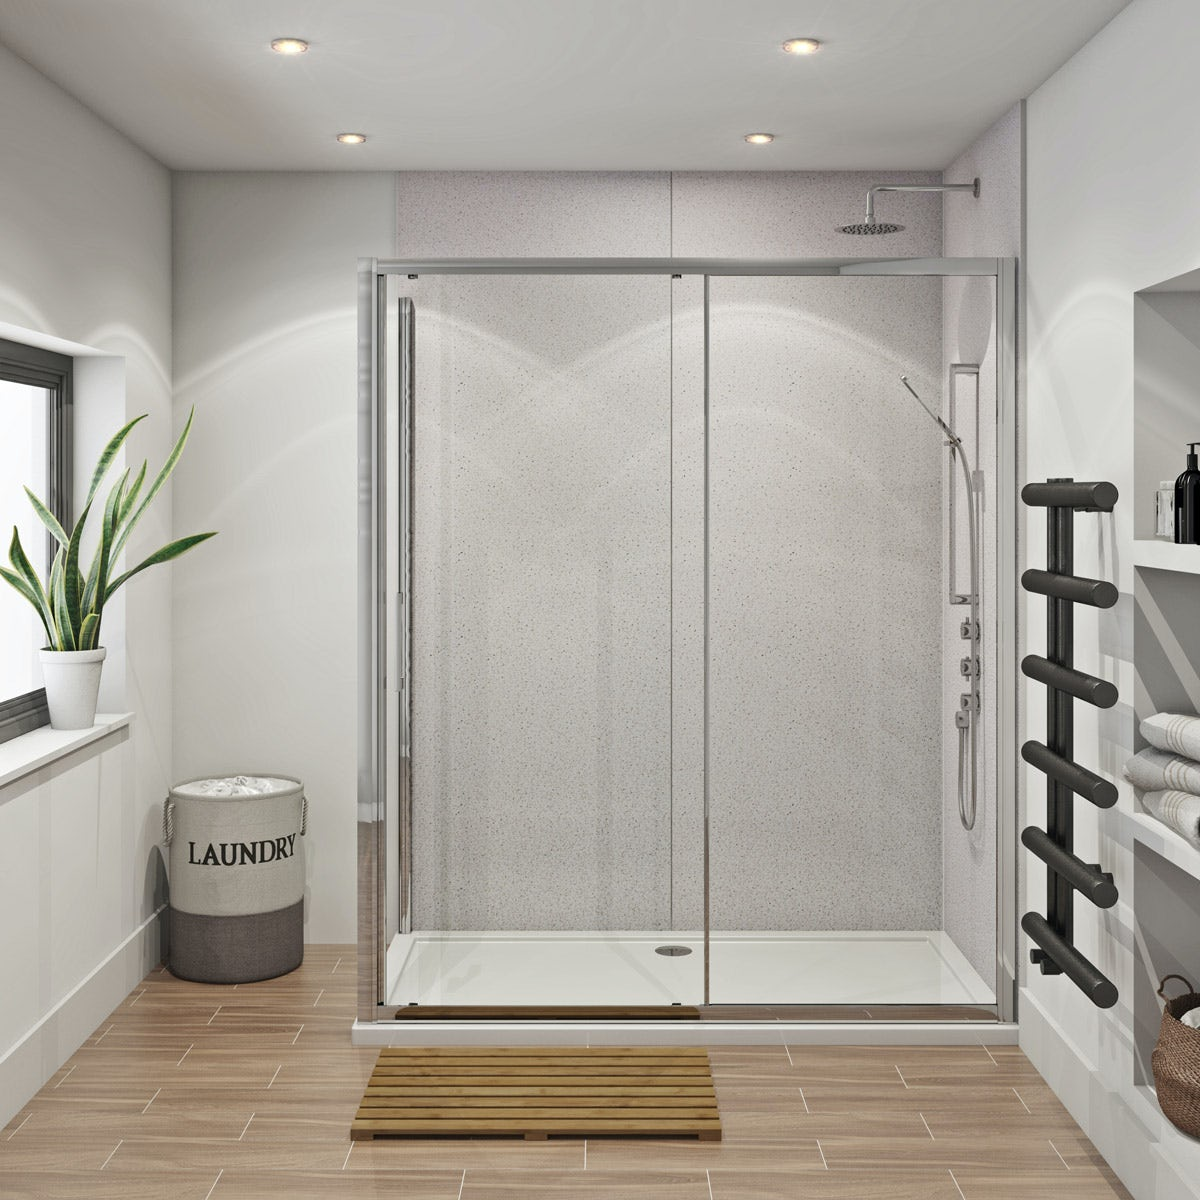 Multipanel Economy Sunlit Quartz Shower Wall Panels With